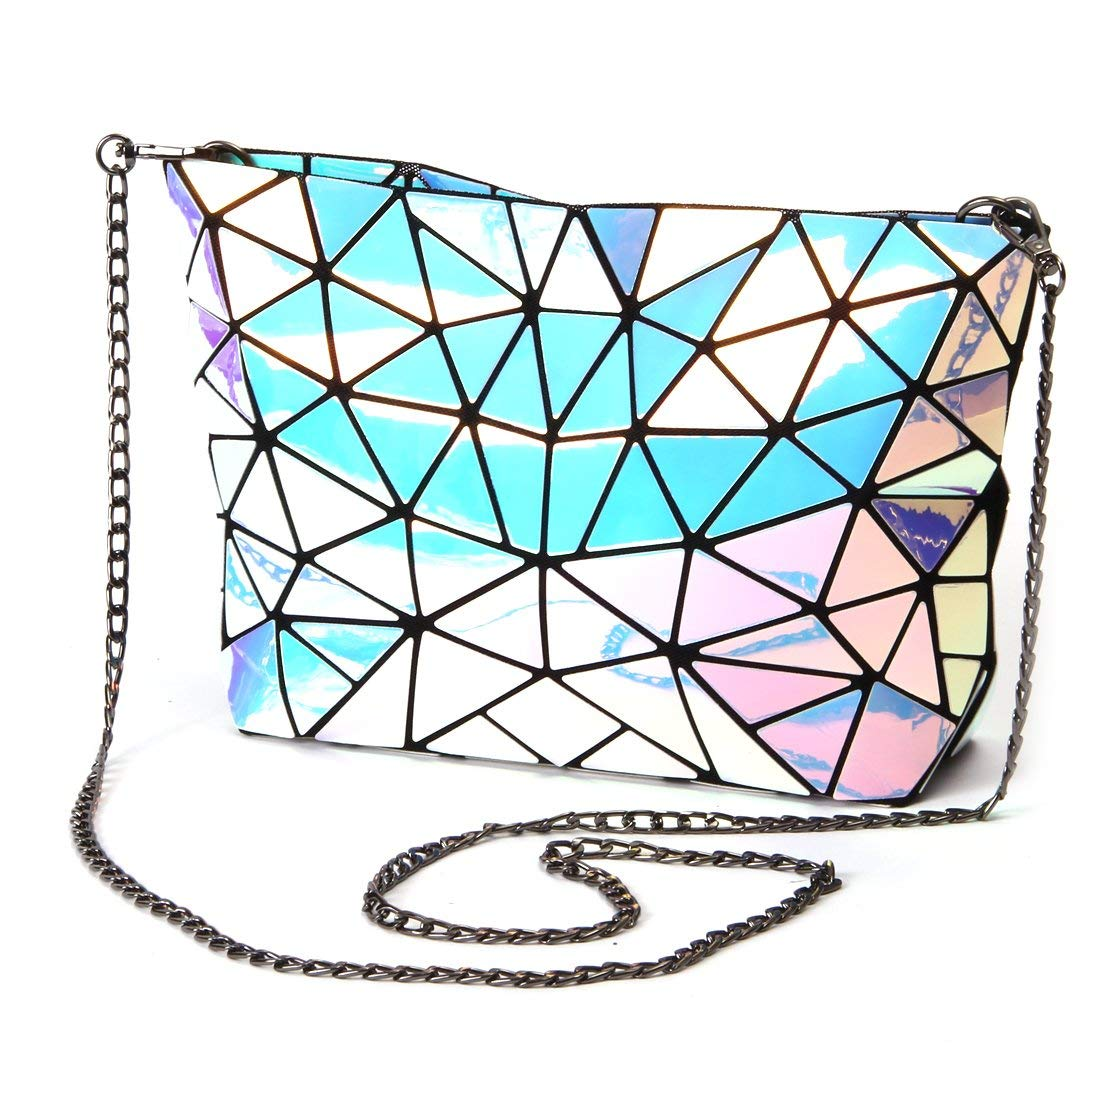 I'm so tempted to get this  geometric purse ! I tend to be the kind of person (purson? you like the puns???) who doesn't buy special occasion items, but this is gorgeous!